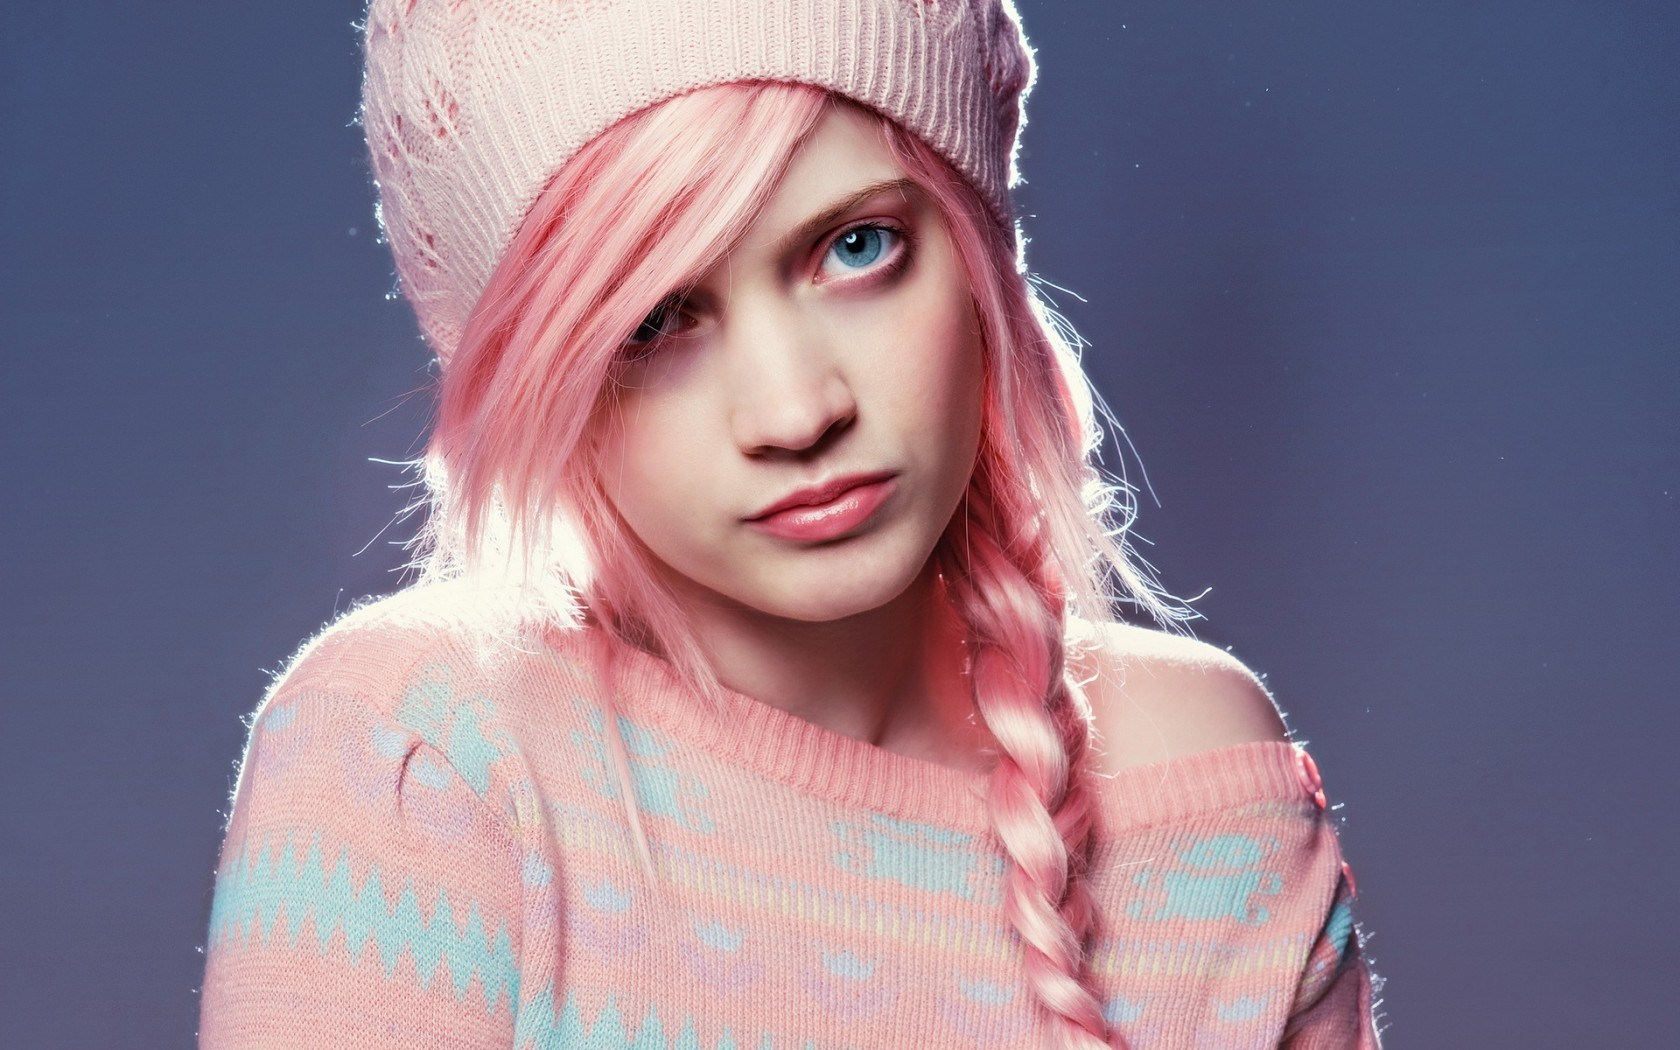 Pink Hair Beauty Model Fashion